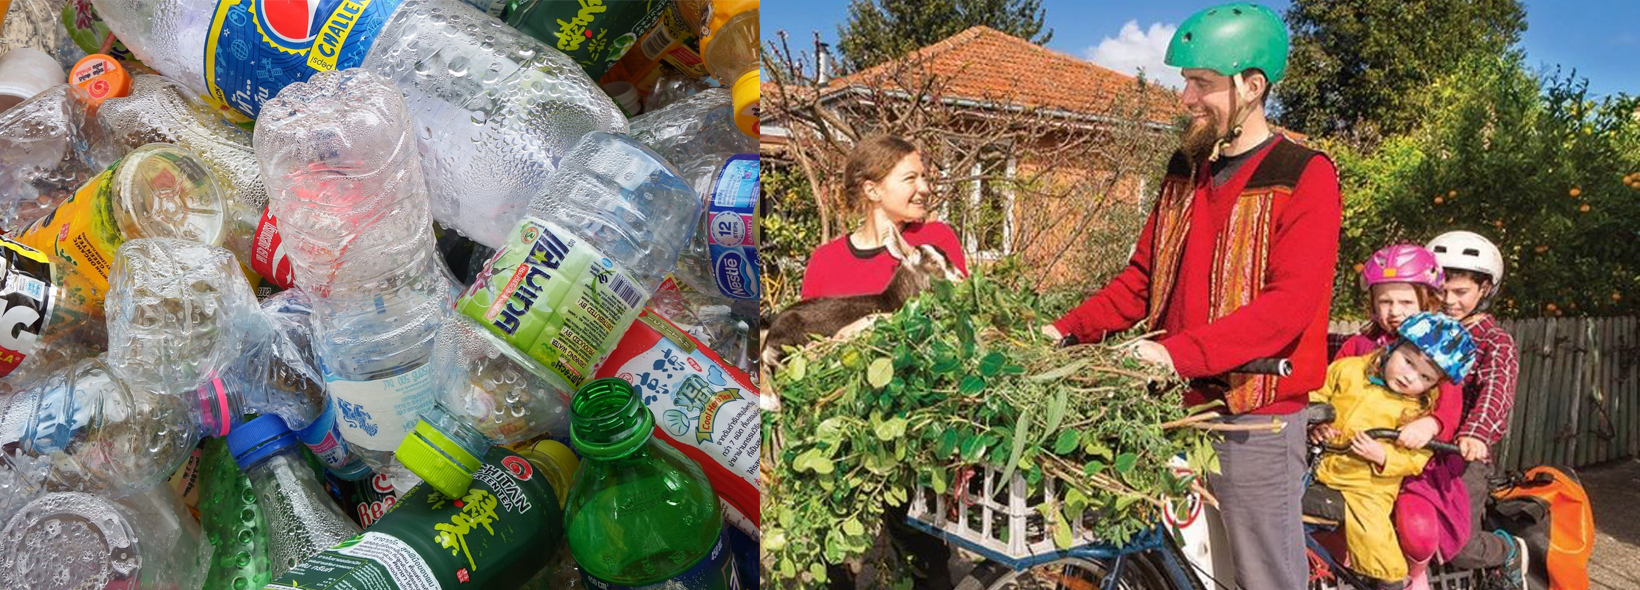 Living Plastic Free and Suburban Permaculture